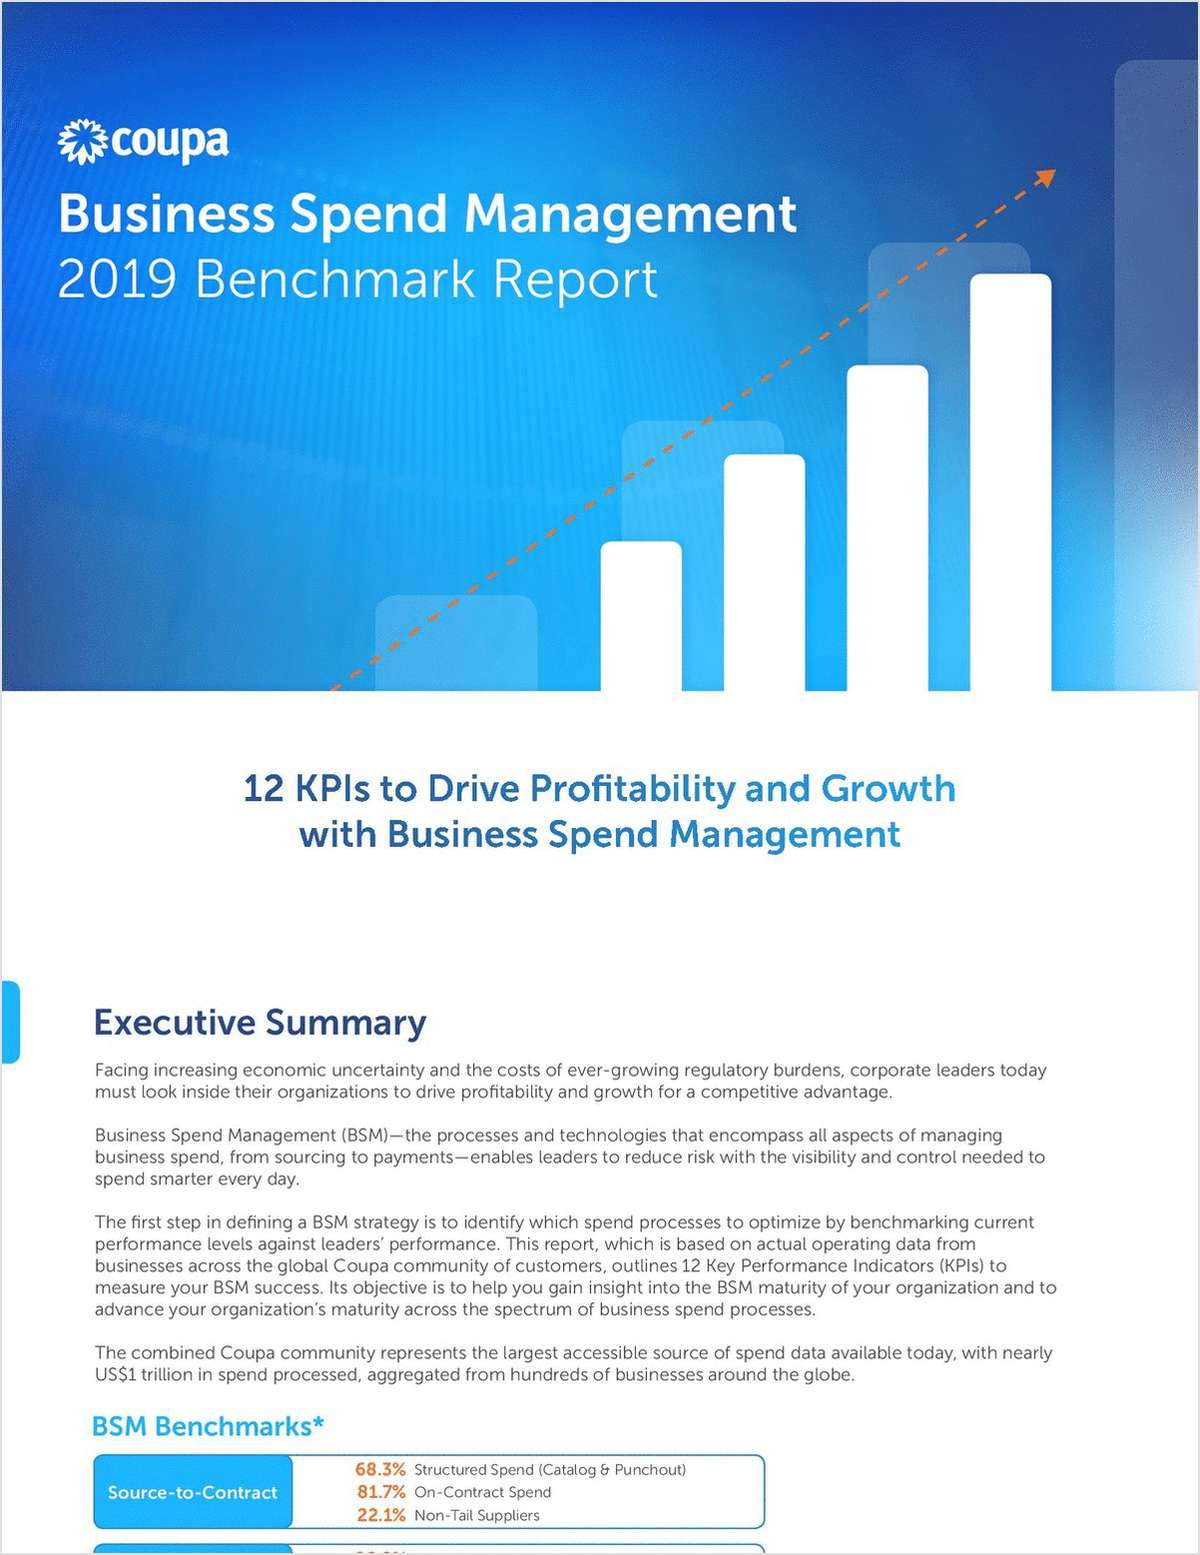 Business Spend Management: 2019 Benchmark Report